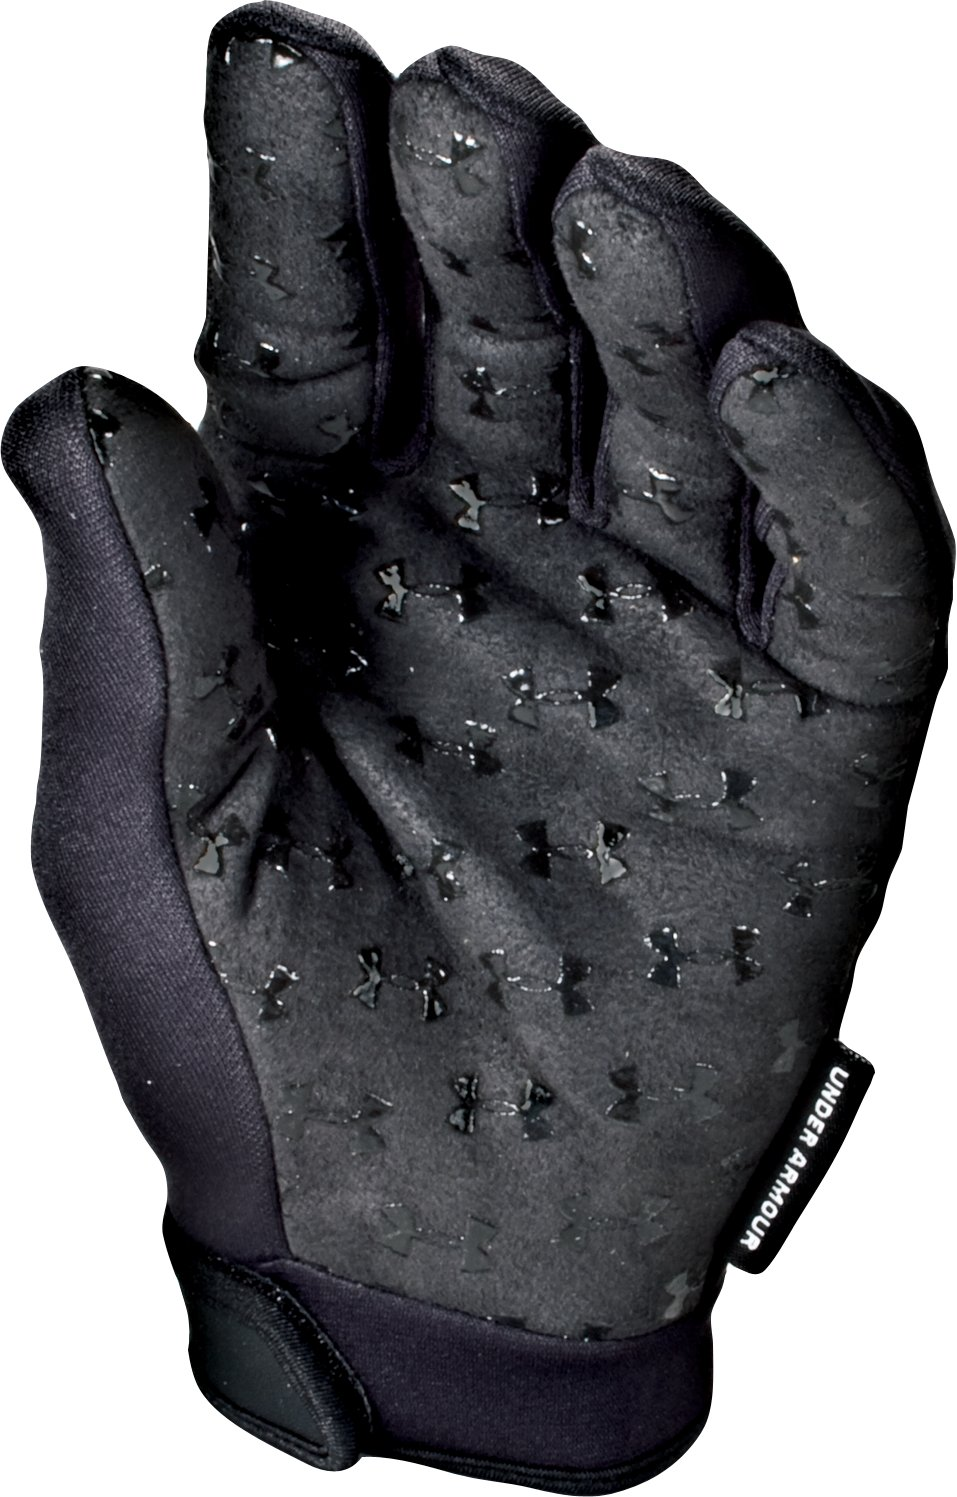 Men's ColdGear® Team Sideline Gloves, Black